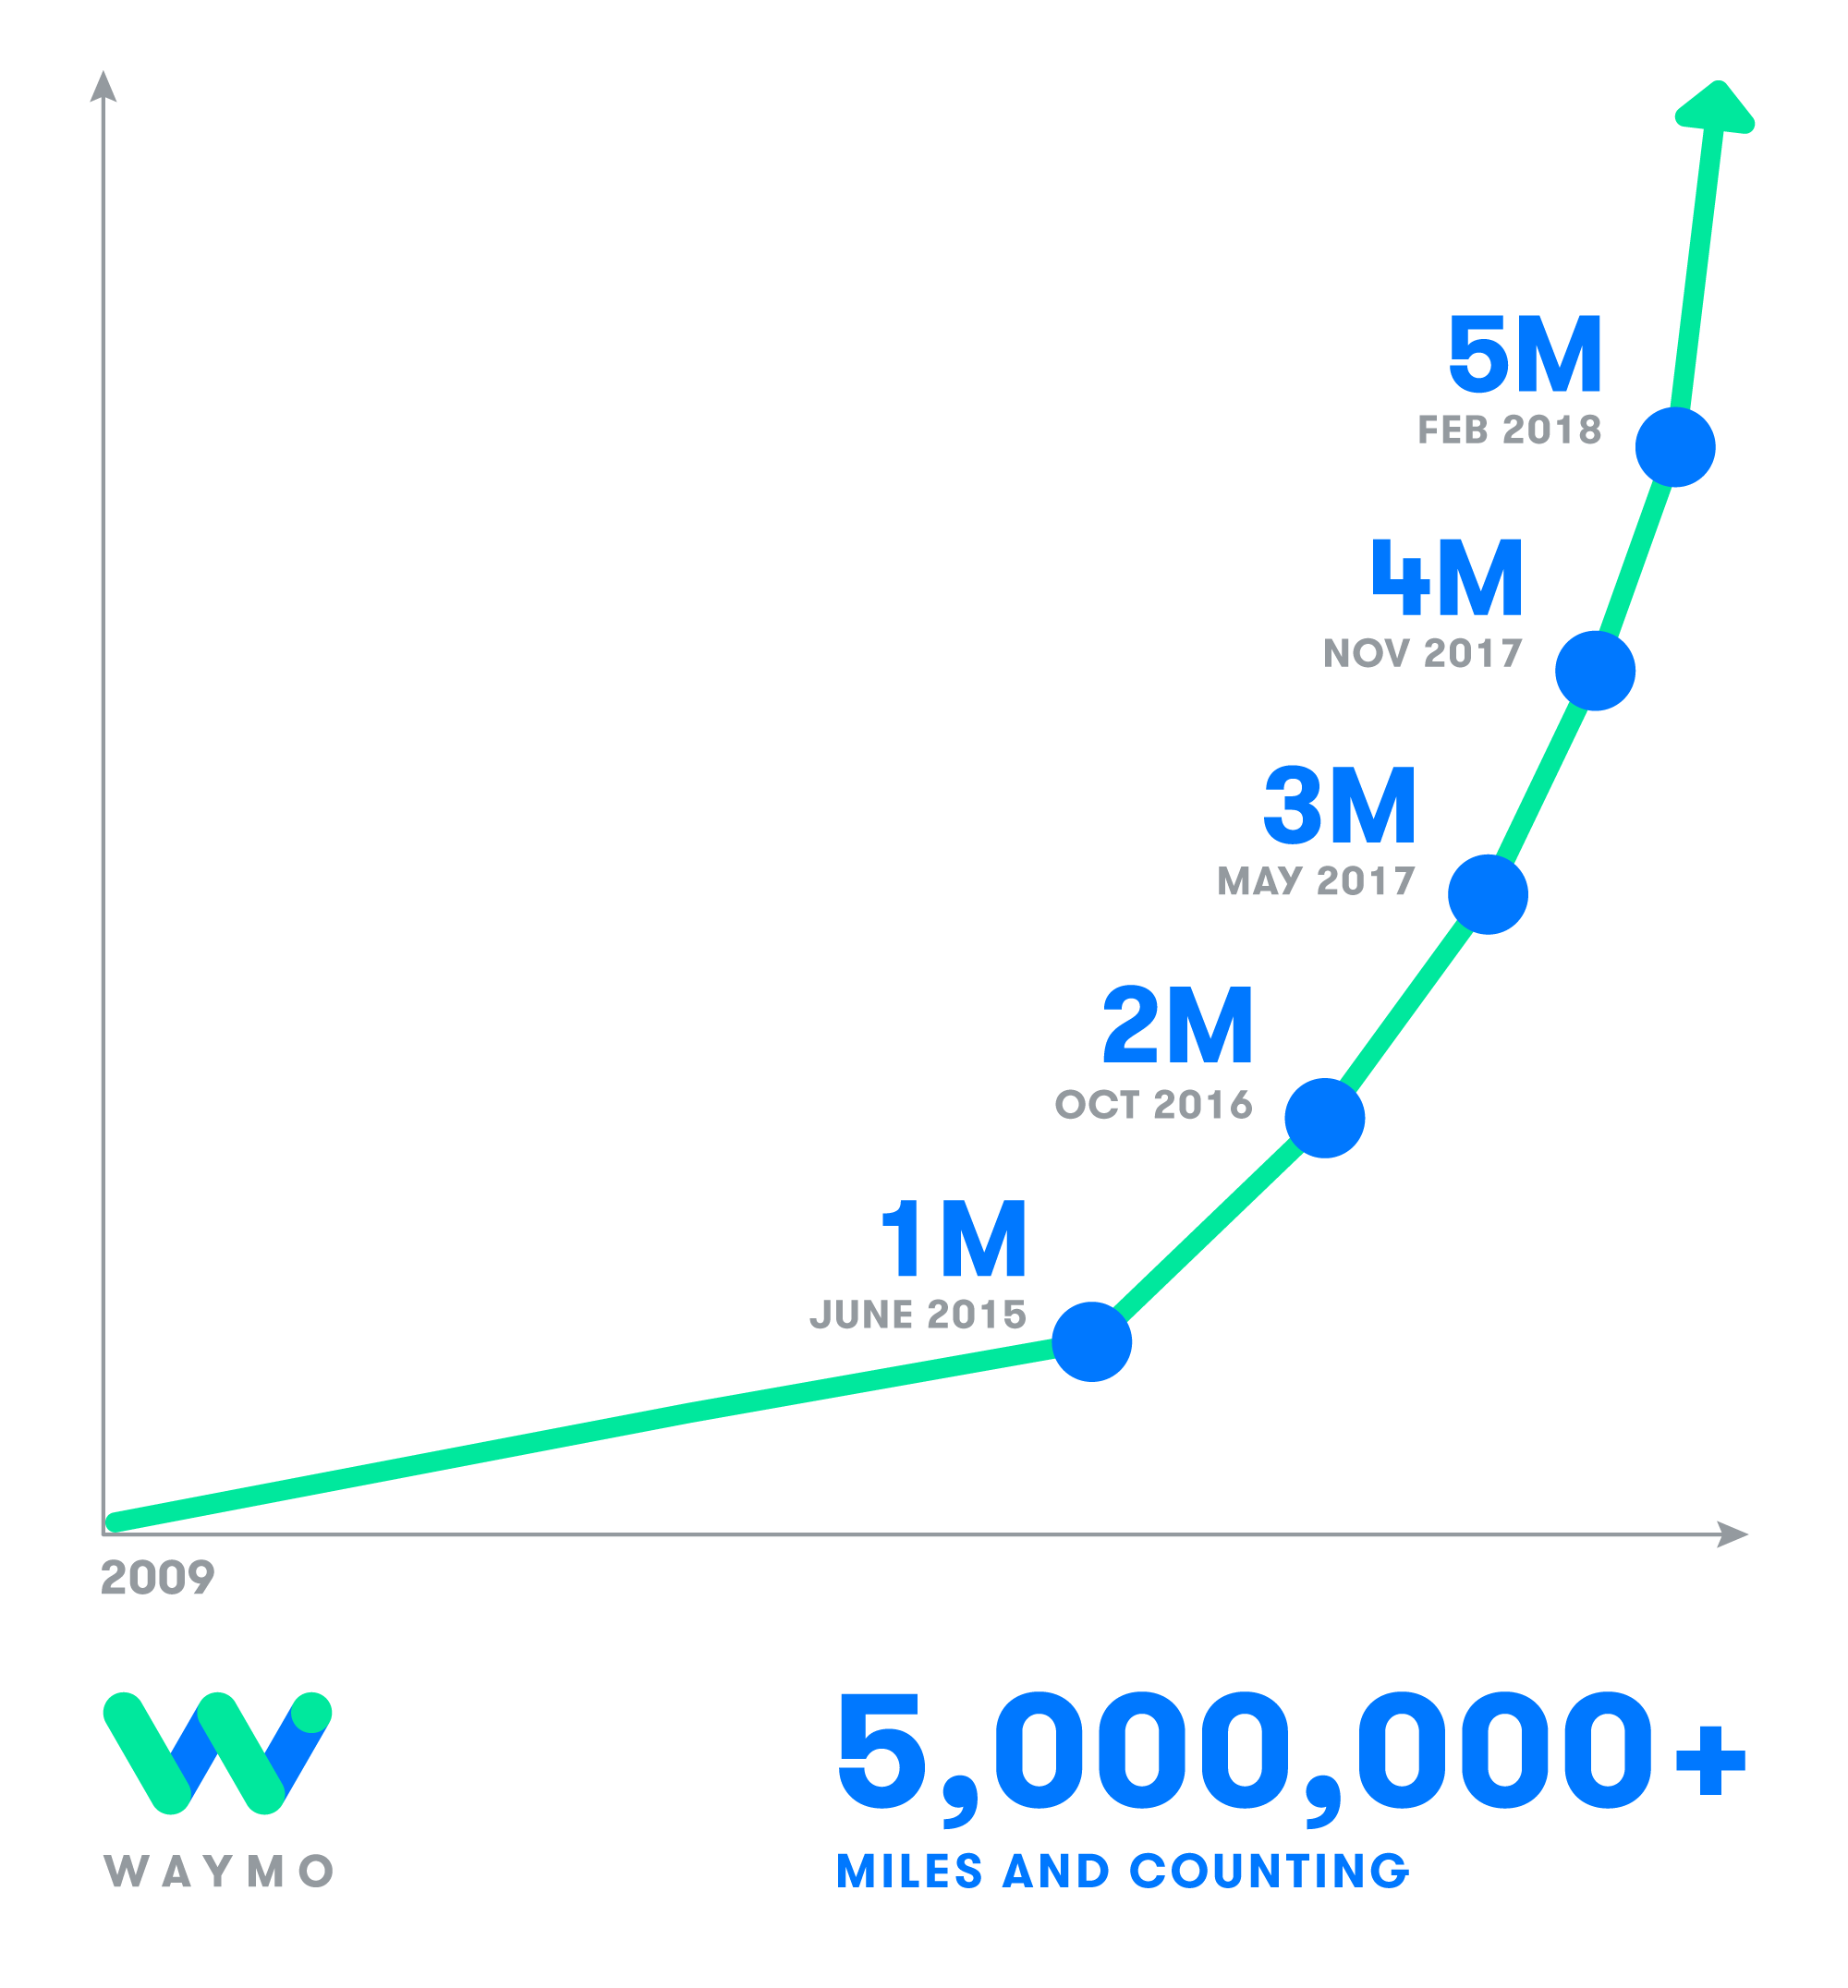 Waymo is picking up speed after reaching 5 million miles in February. (Source: Waymo)